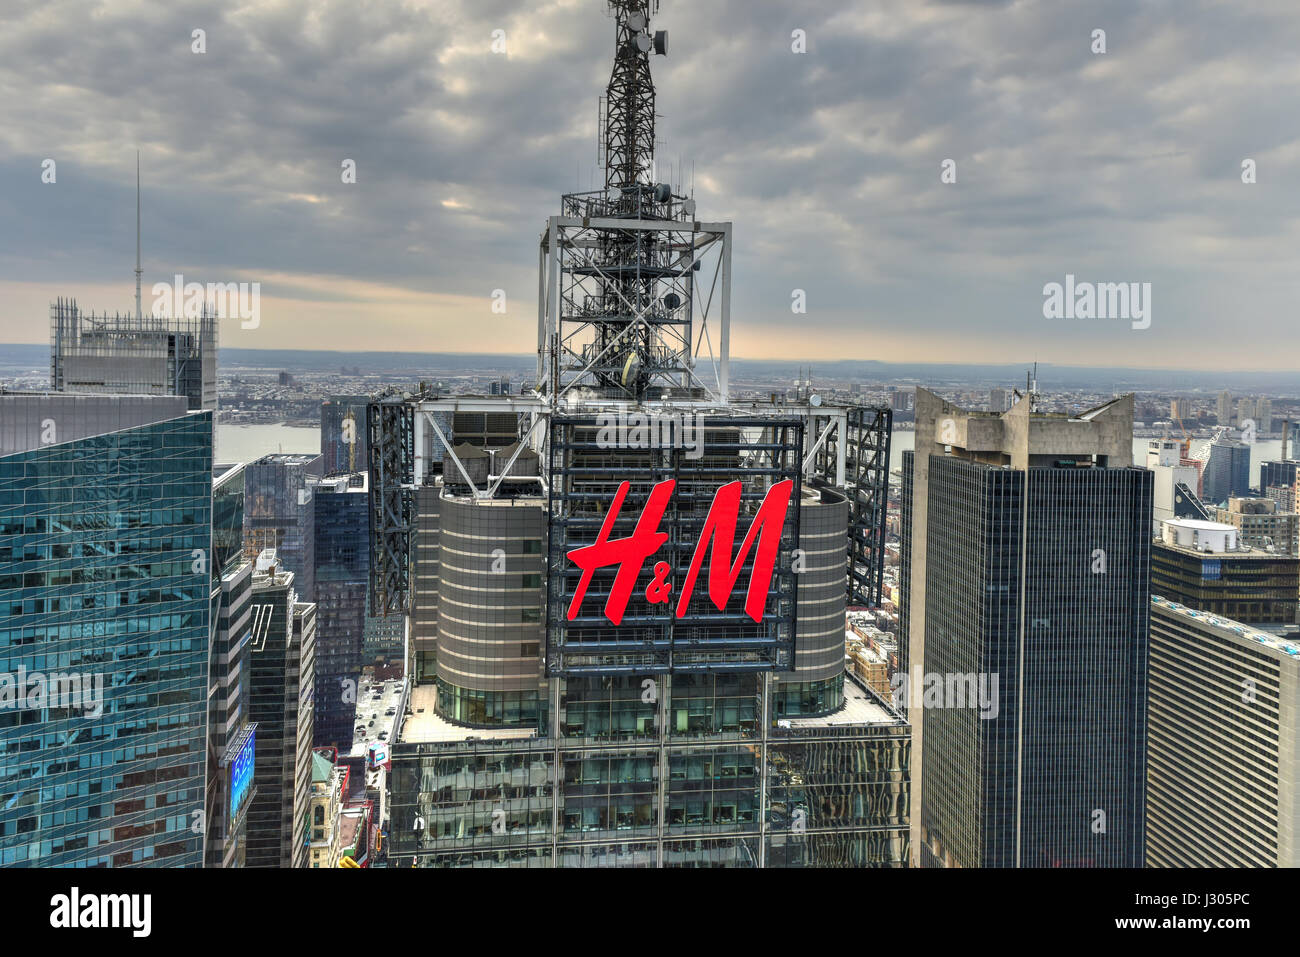 New York City - March 24, 2017: Aerial view of the H&M ...